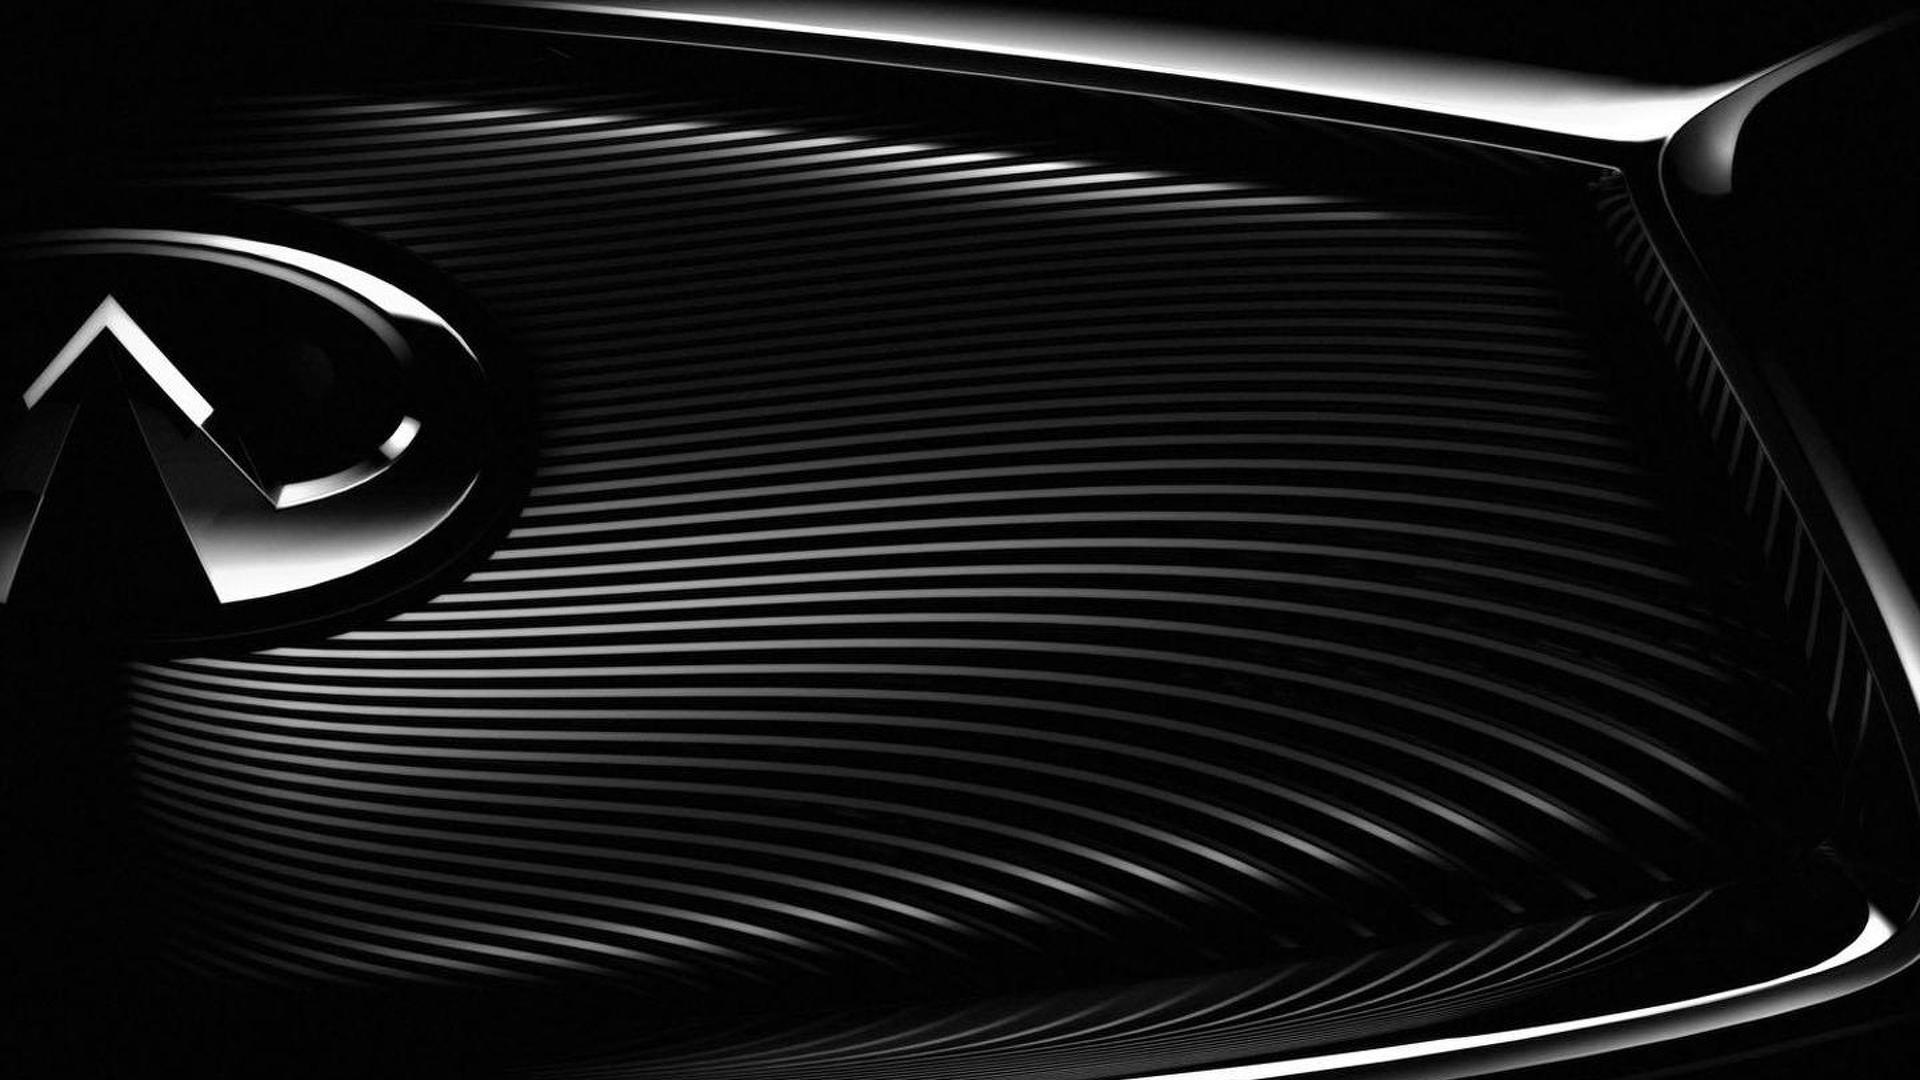 Infiniti teases a mysterious new model for Paris